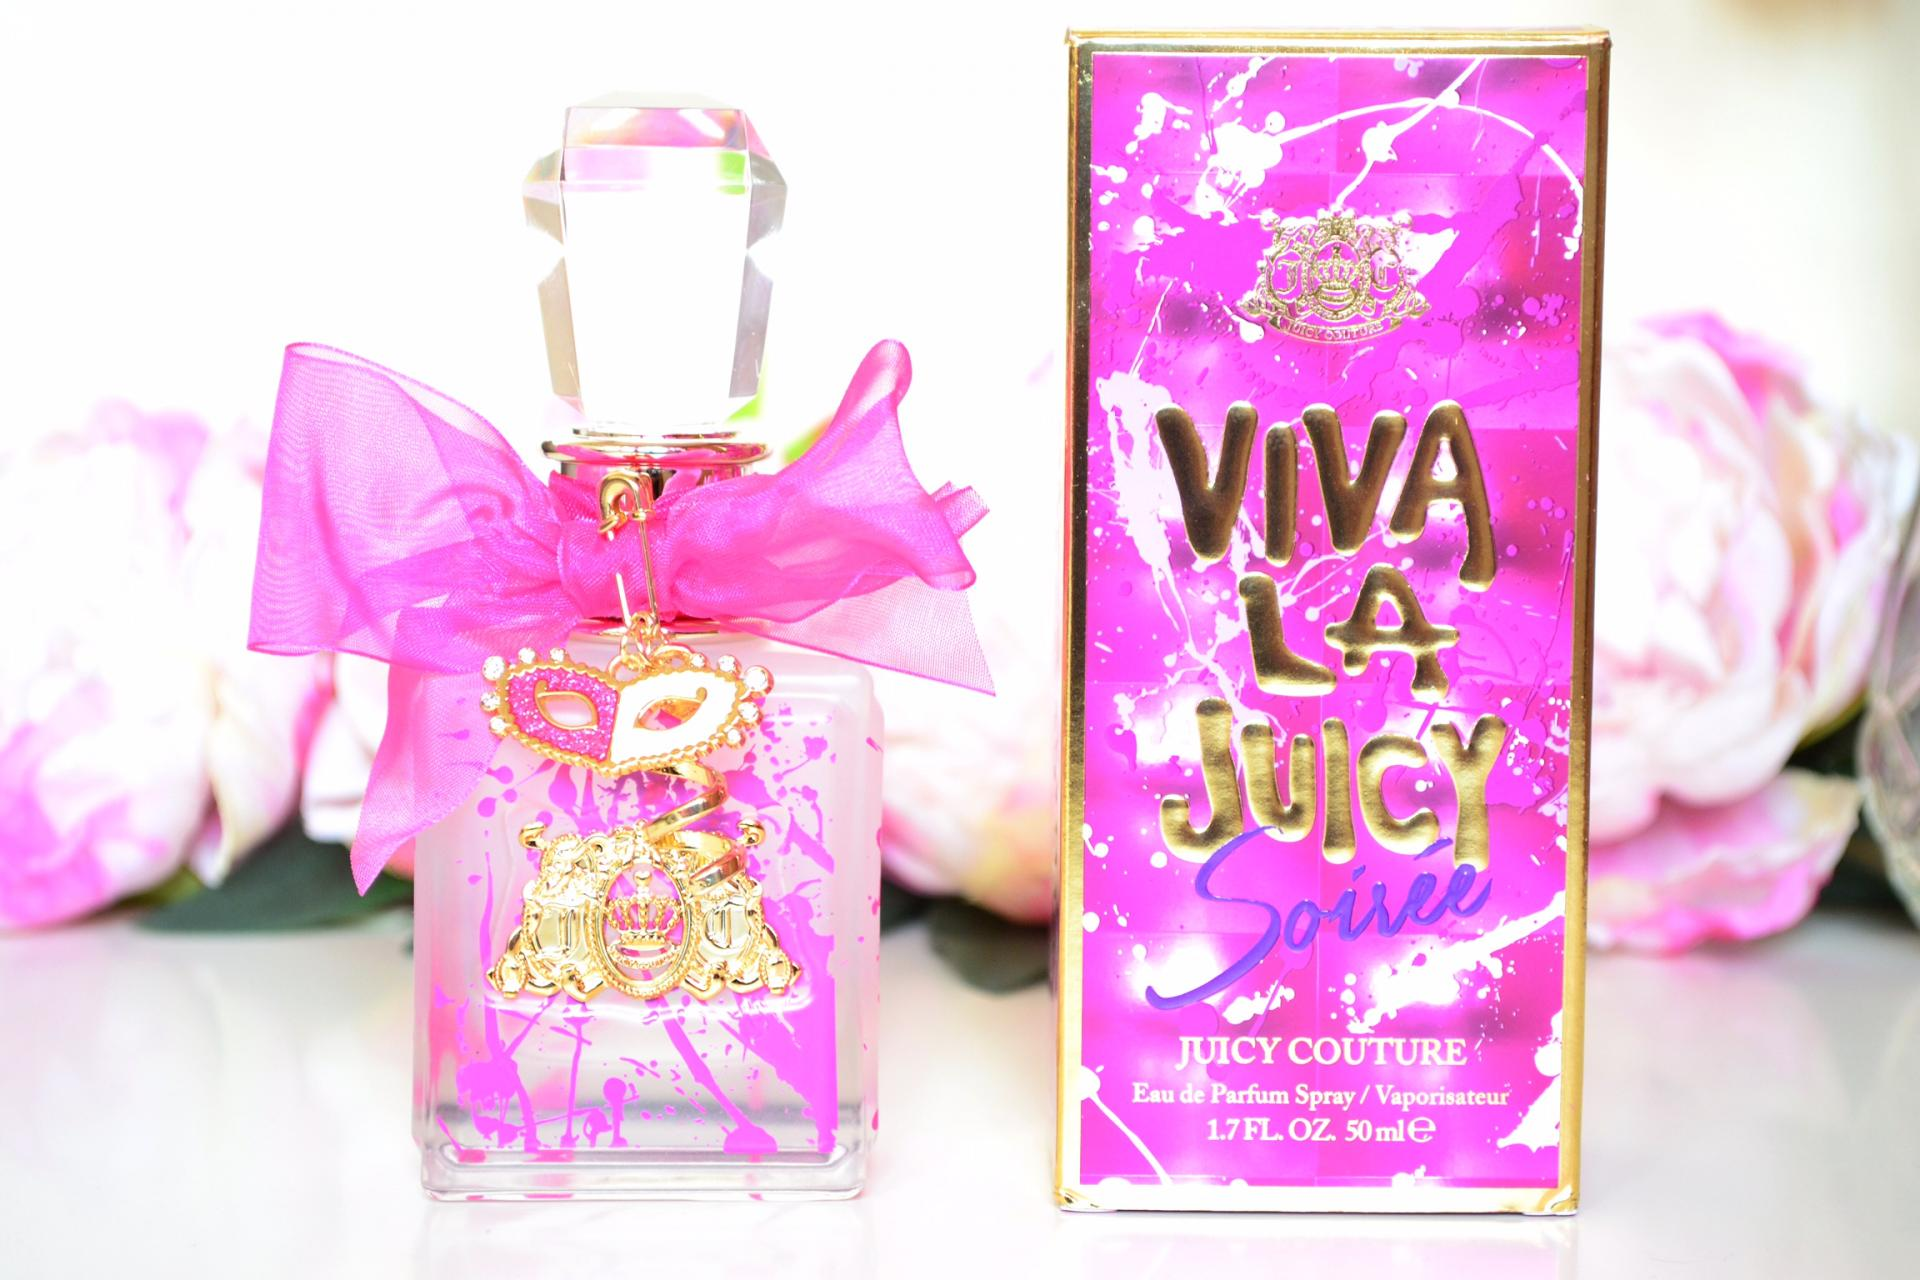 Juicy-Couture-Viva-La-Juicy-Soirée-Eau-de-Parfum-review